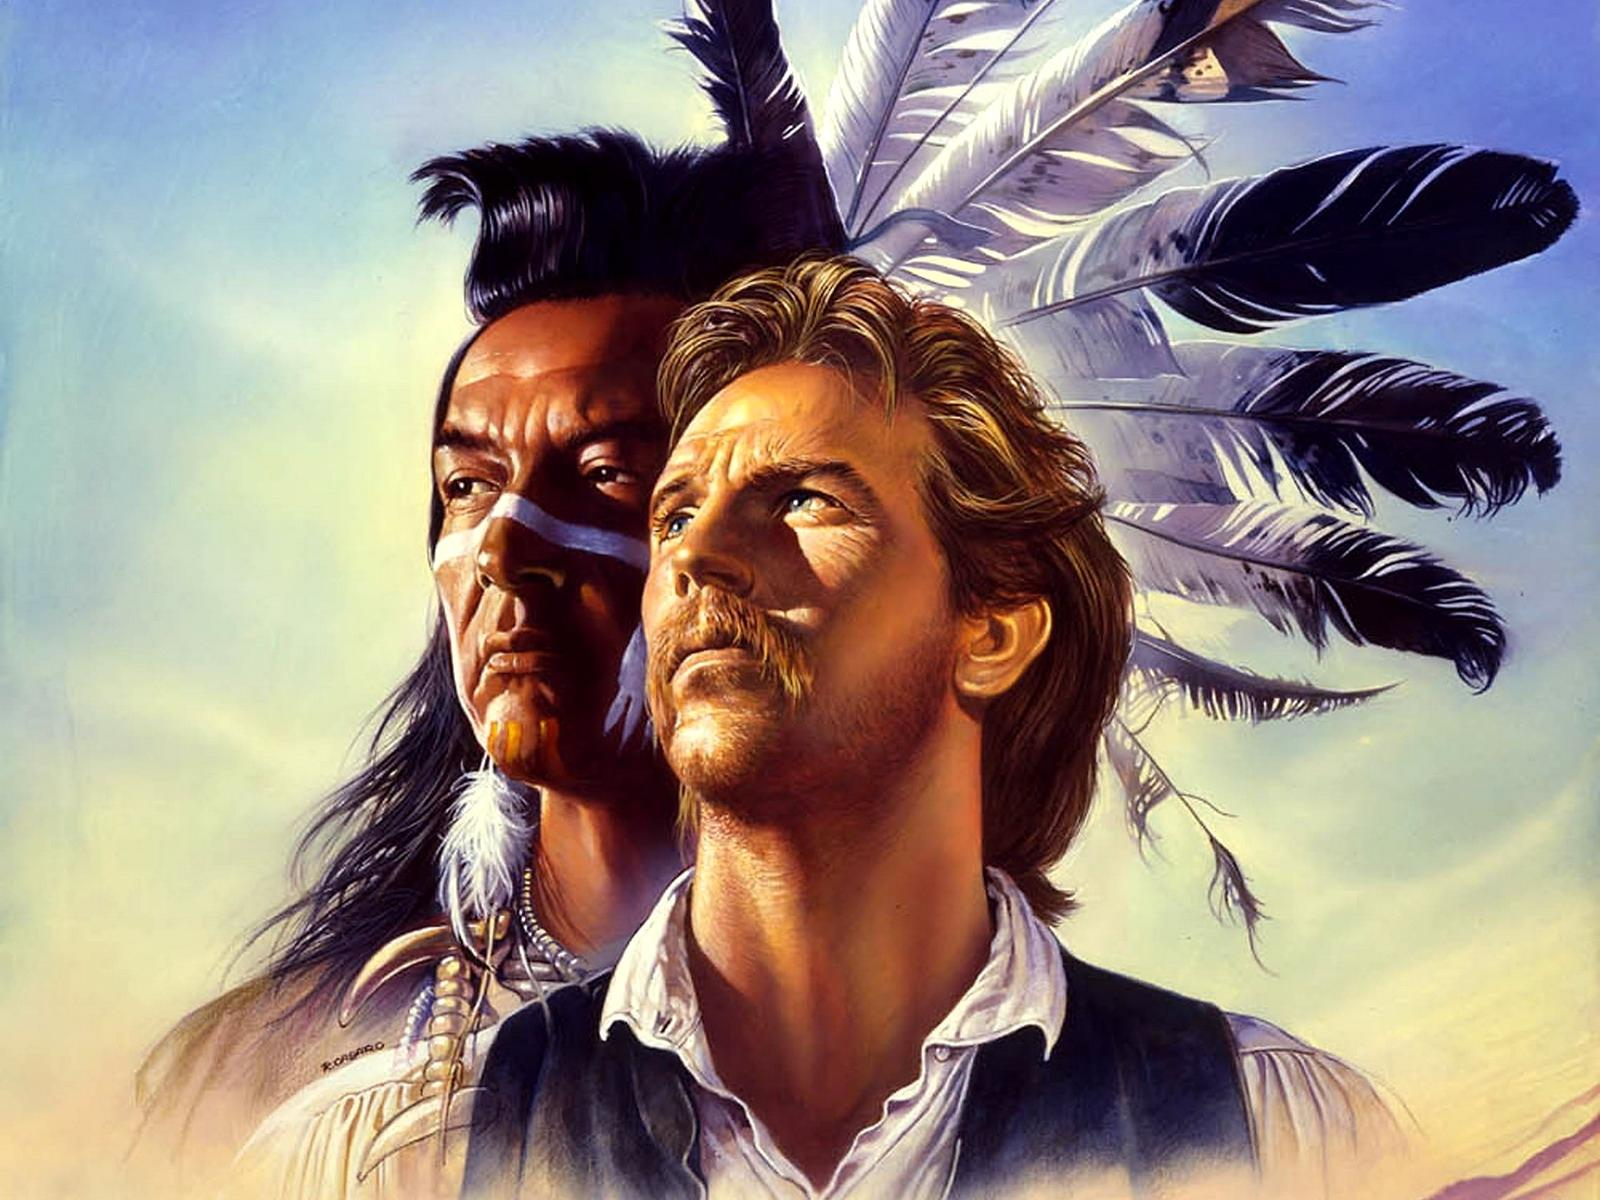 Dances with wolves, Hollywood, filmbibo